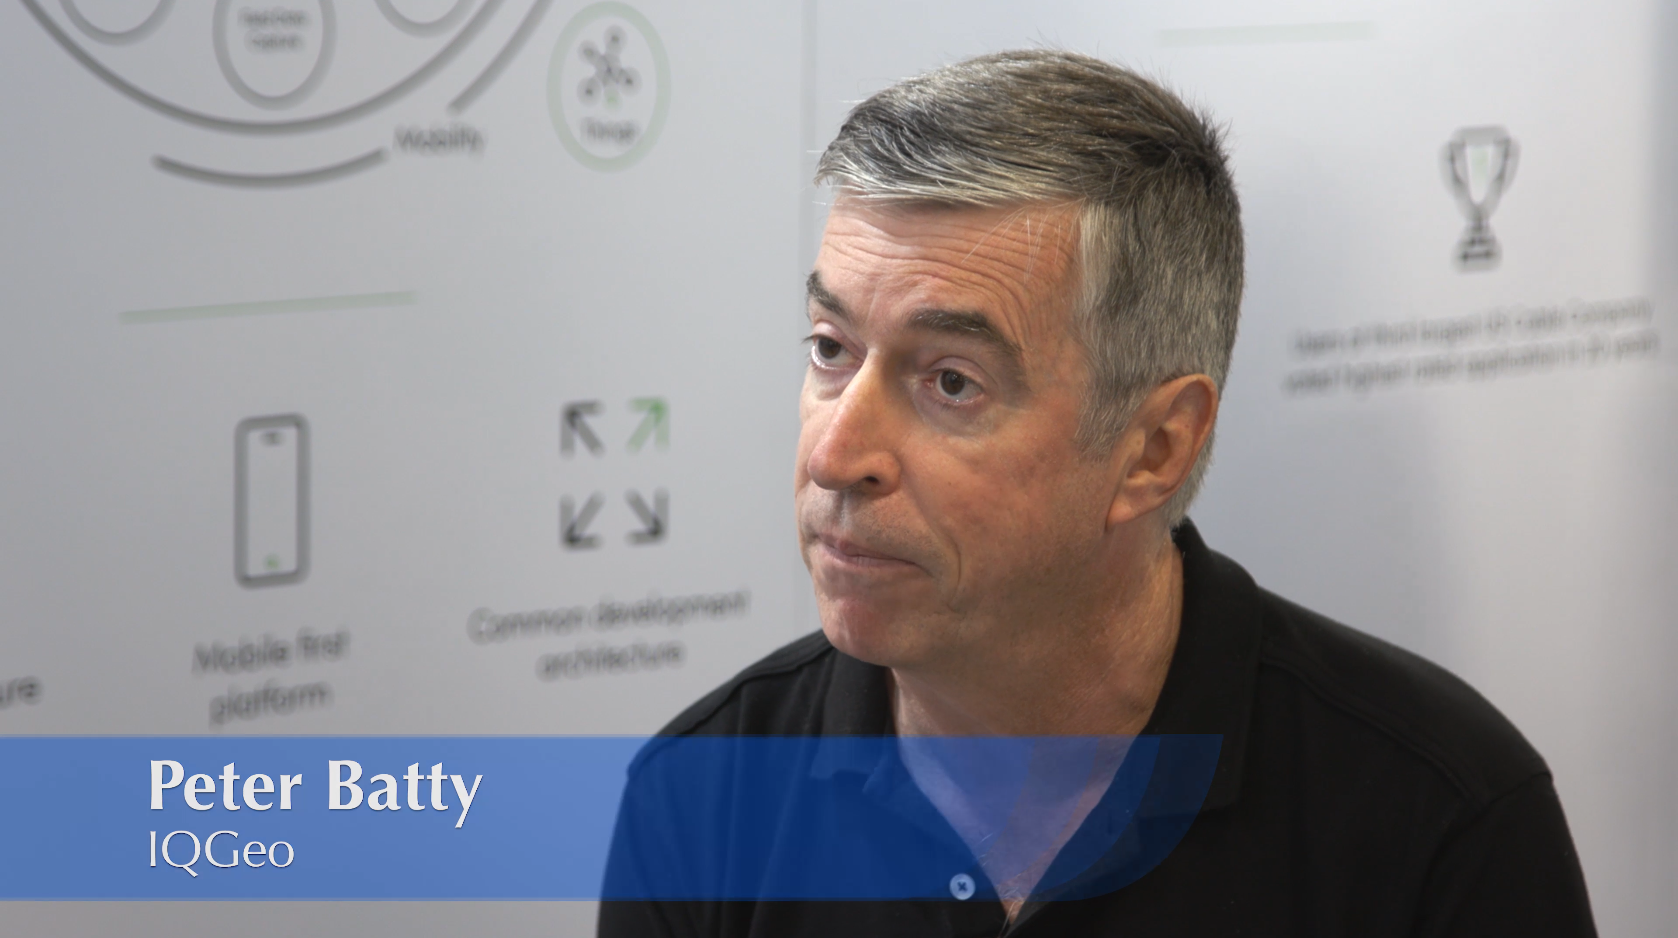 Interview with Peter Batty, CTO at IQGeo